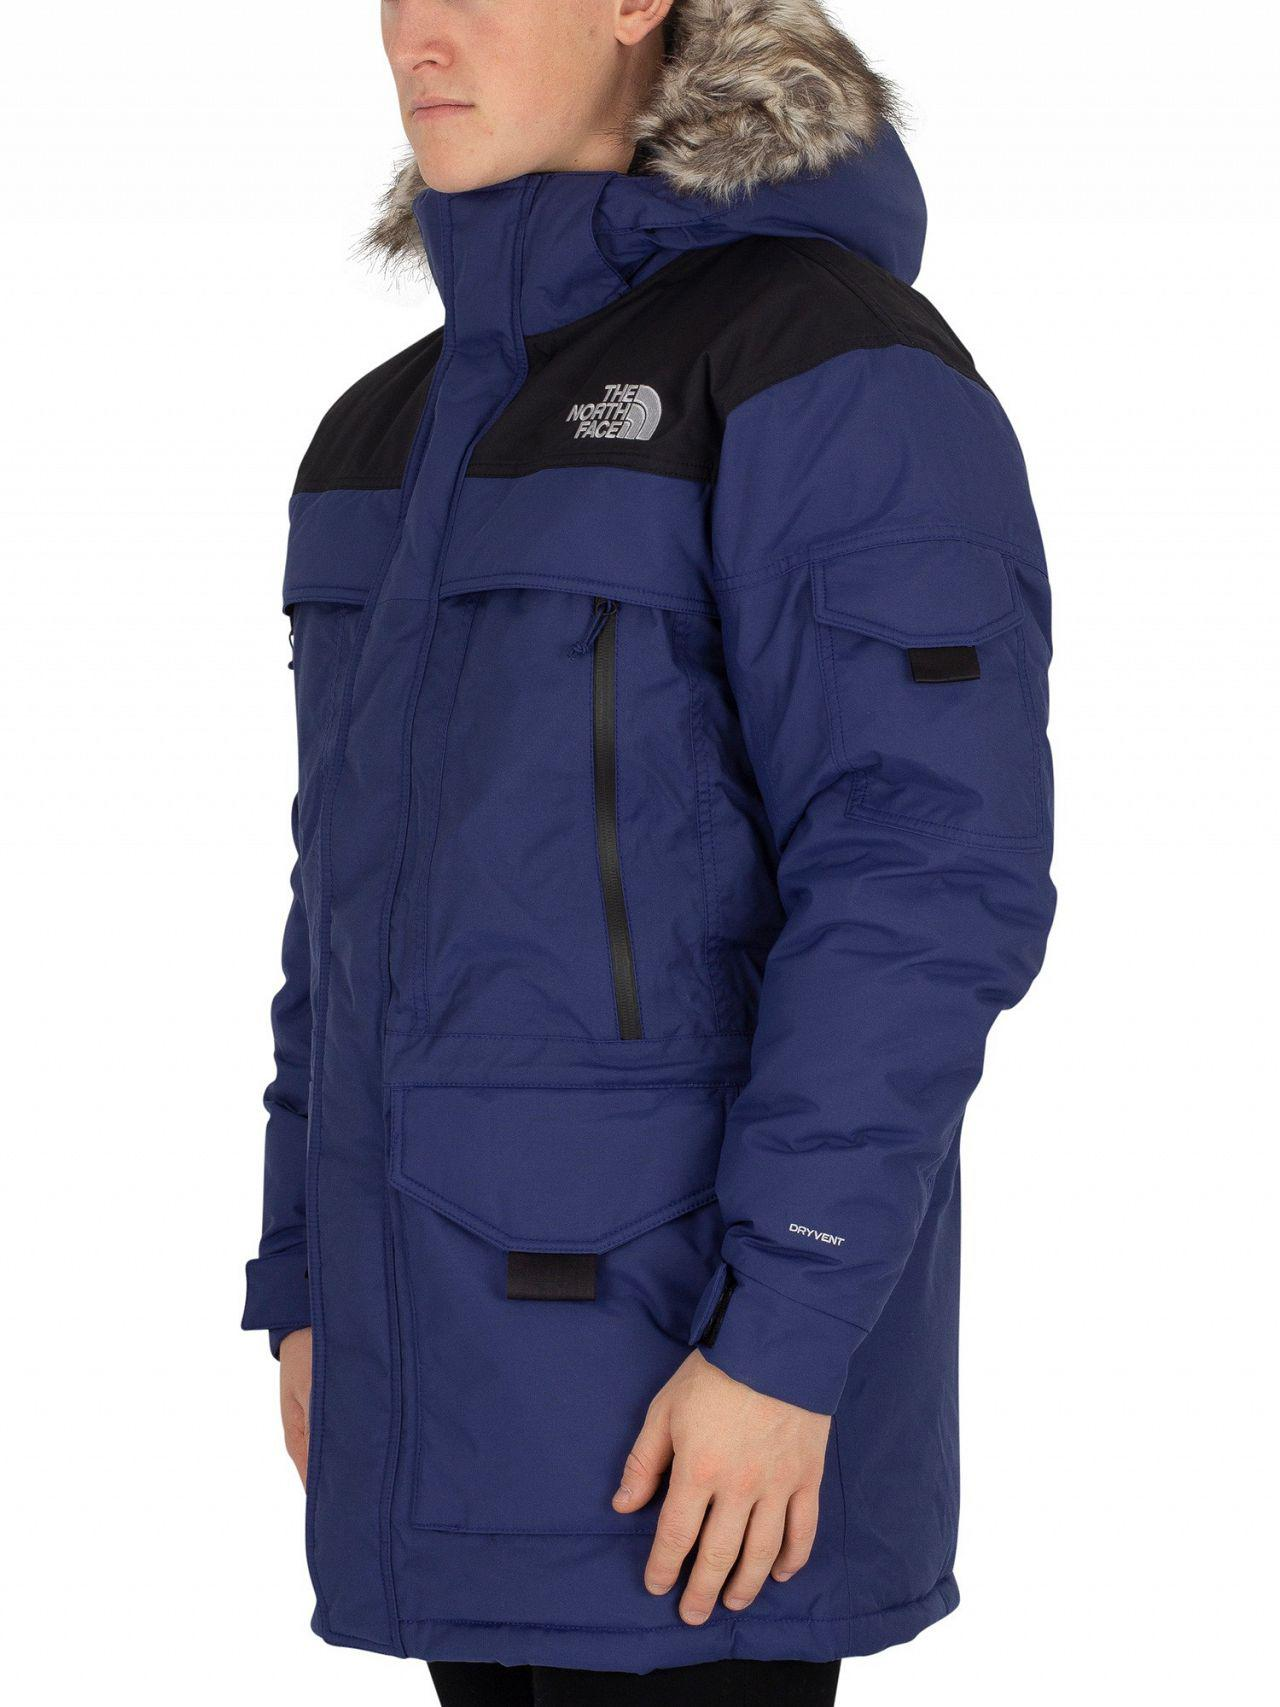 The North Face - Flag Blue black Murdo Parka Jacket for Men - Lyst. View  fullscreen c69d19831